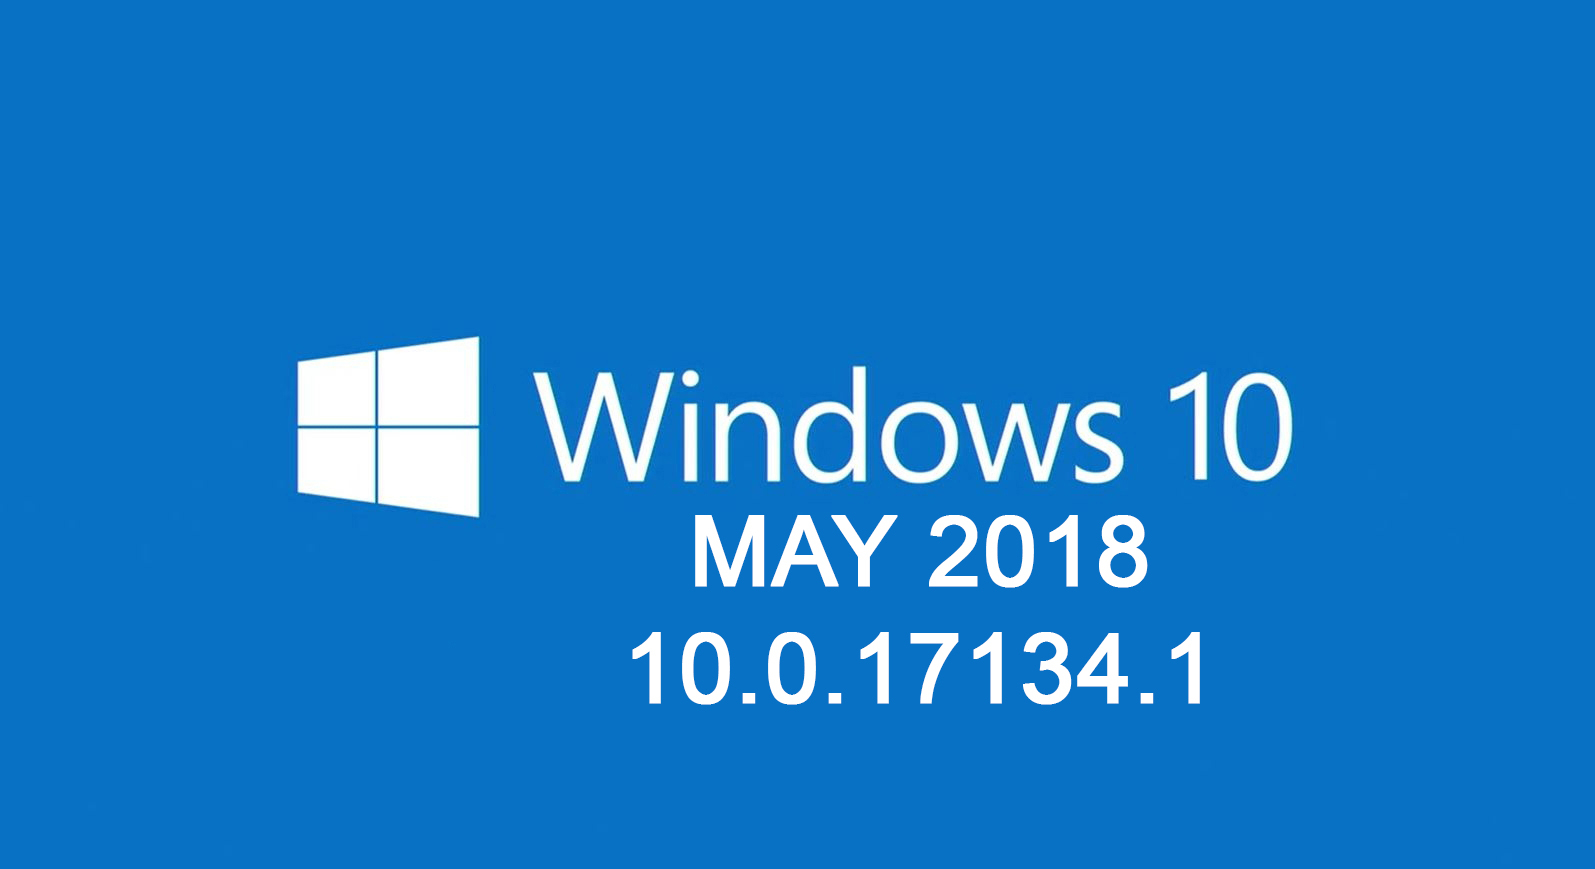 Windows 10 May 2018 RUS-ENG 26in1 v10.0.17134.1